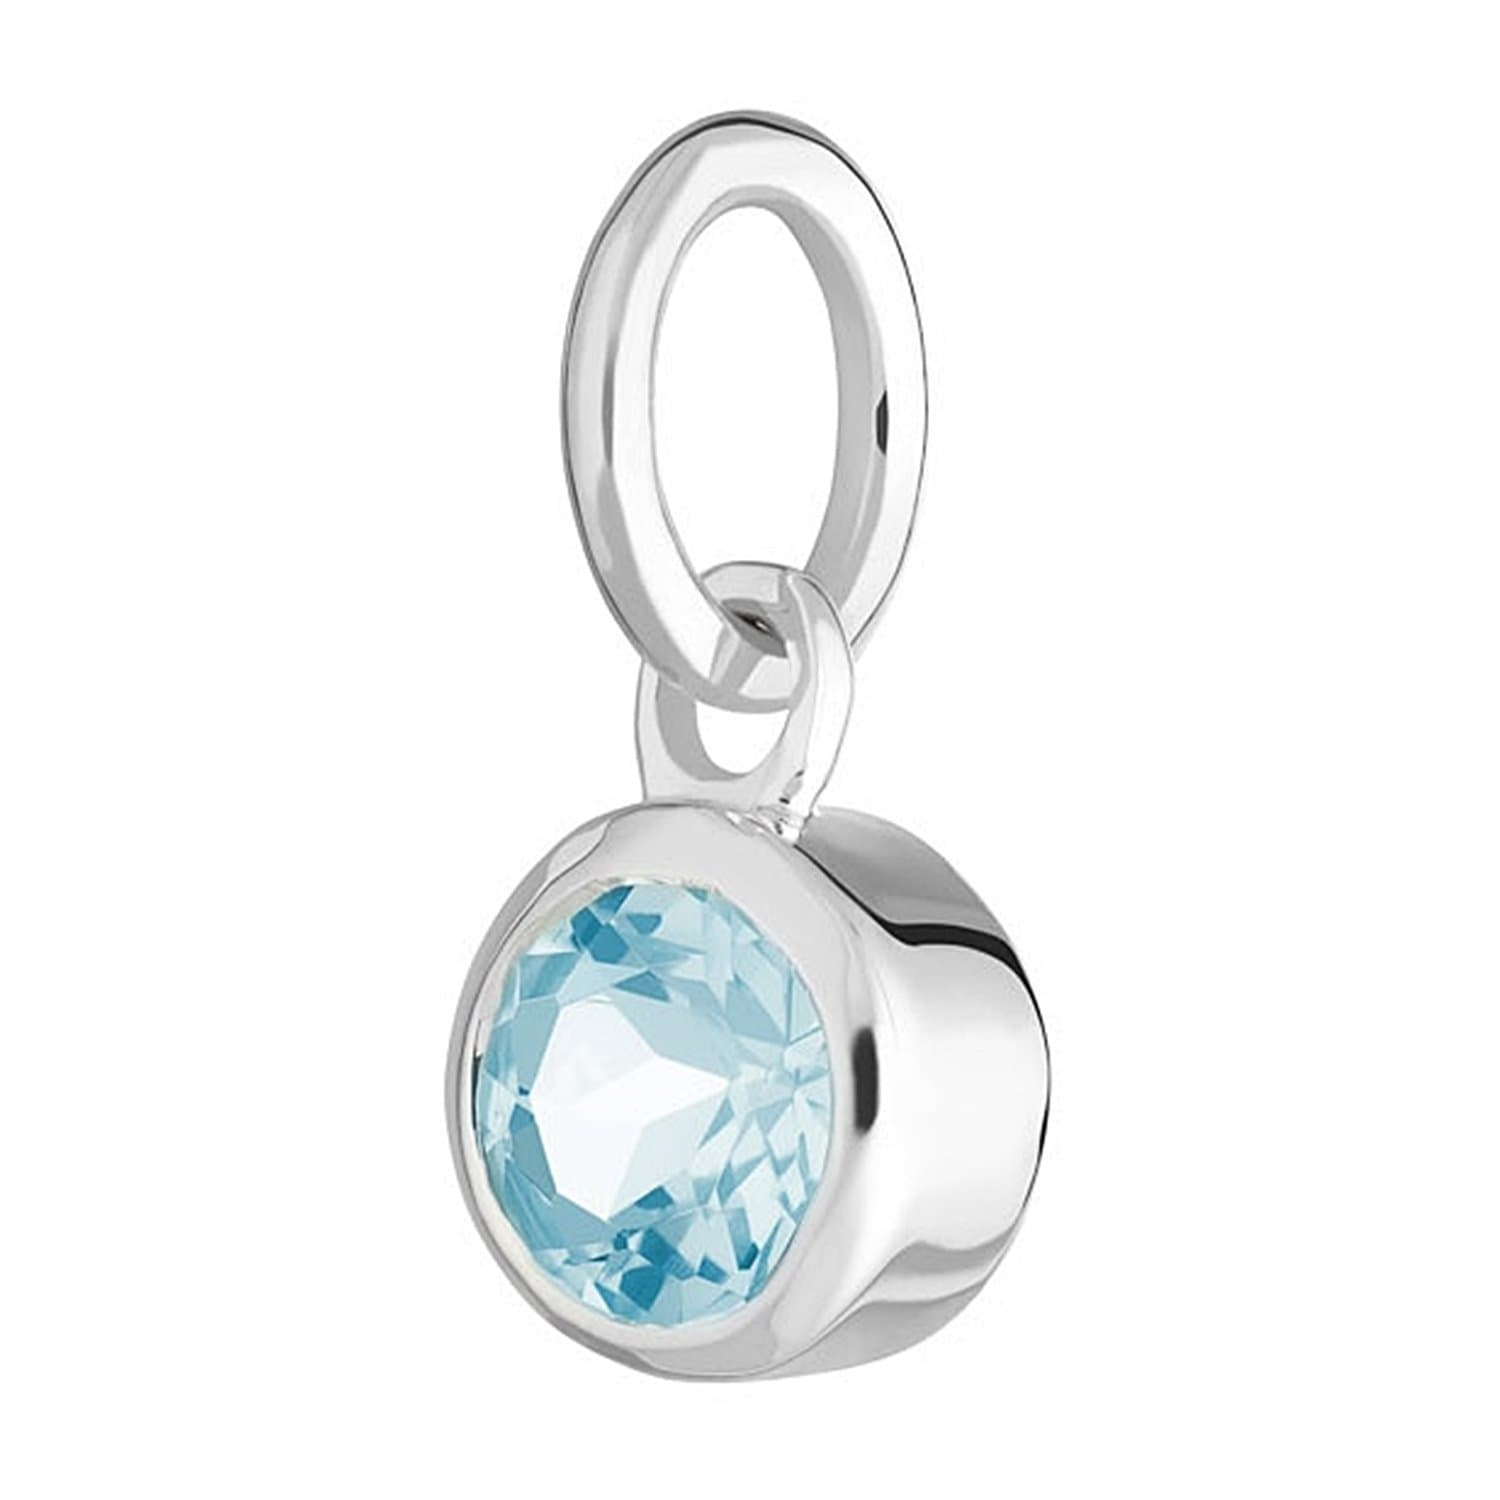 Aquamarine Charm - March Birthstone - Lily Charmed